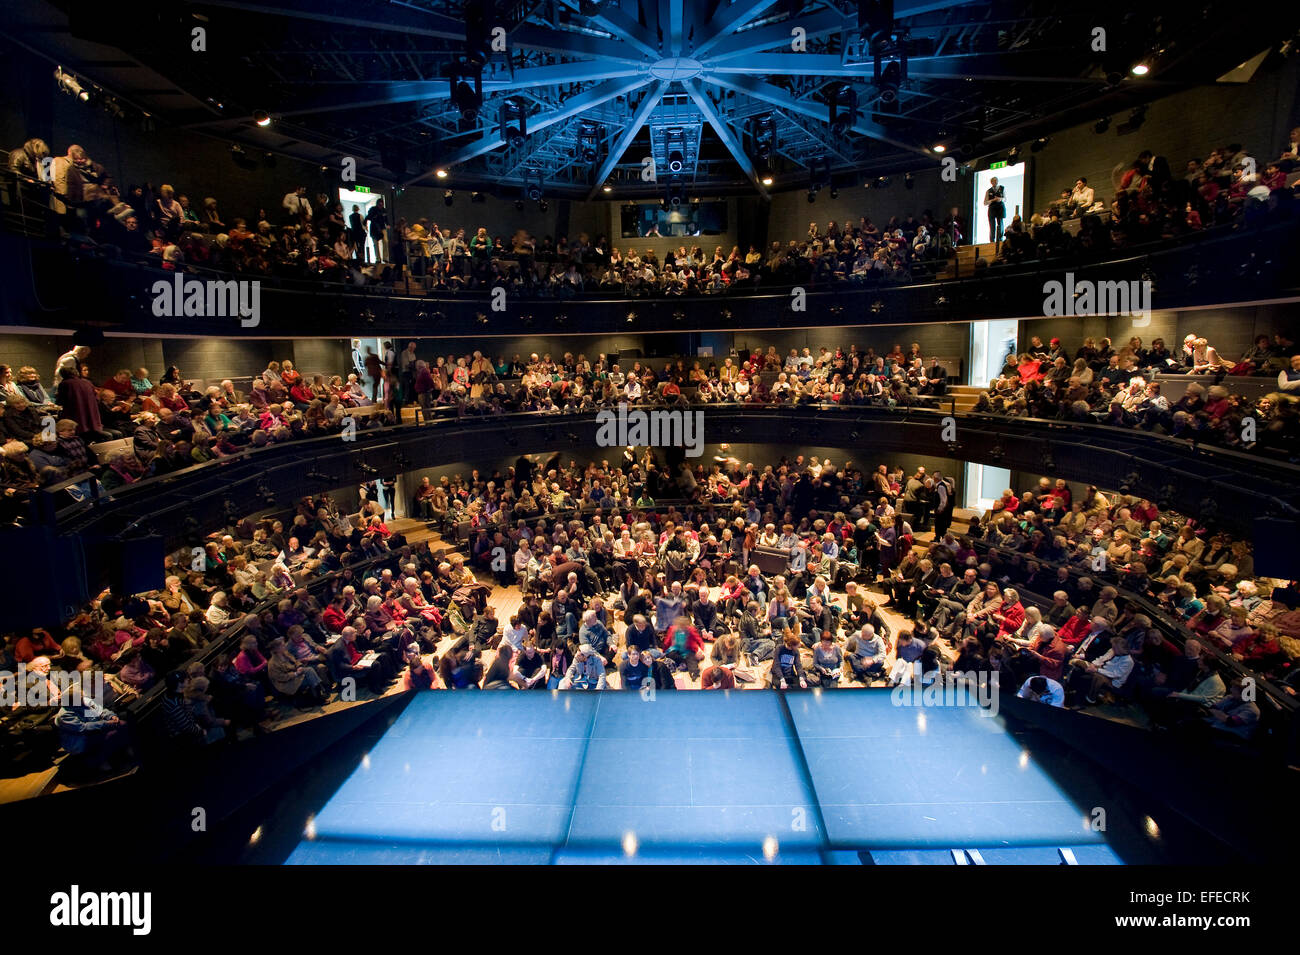 Theatre Stage Audience Interior Stock Photos Amp Theatre